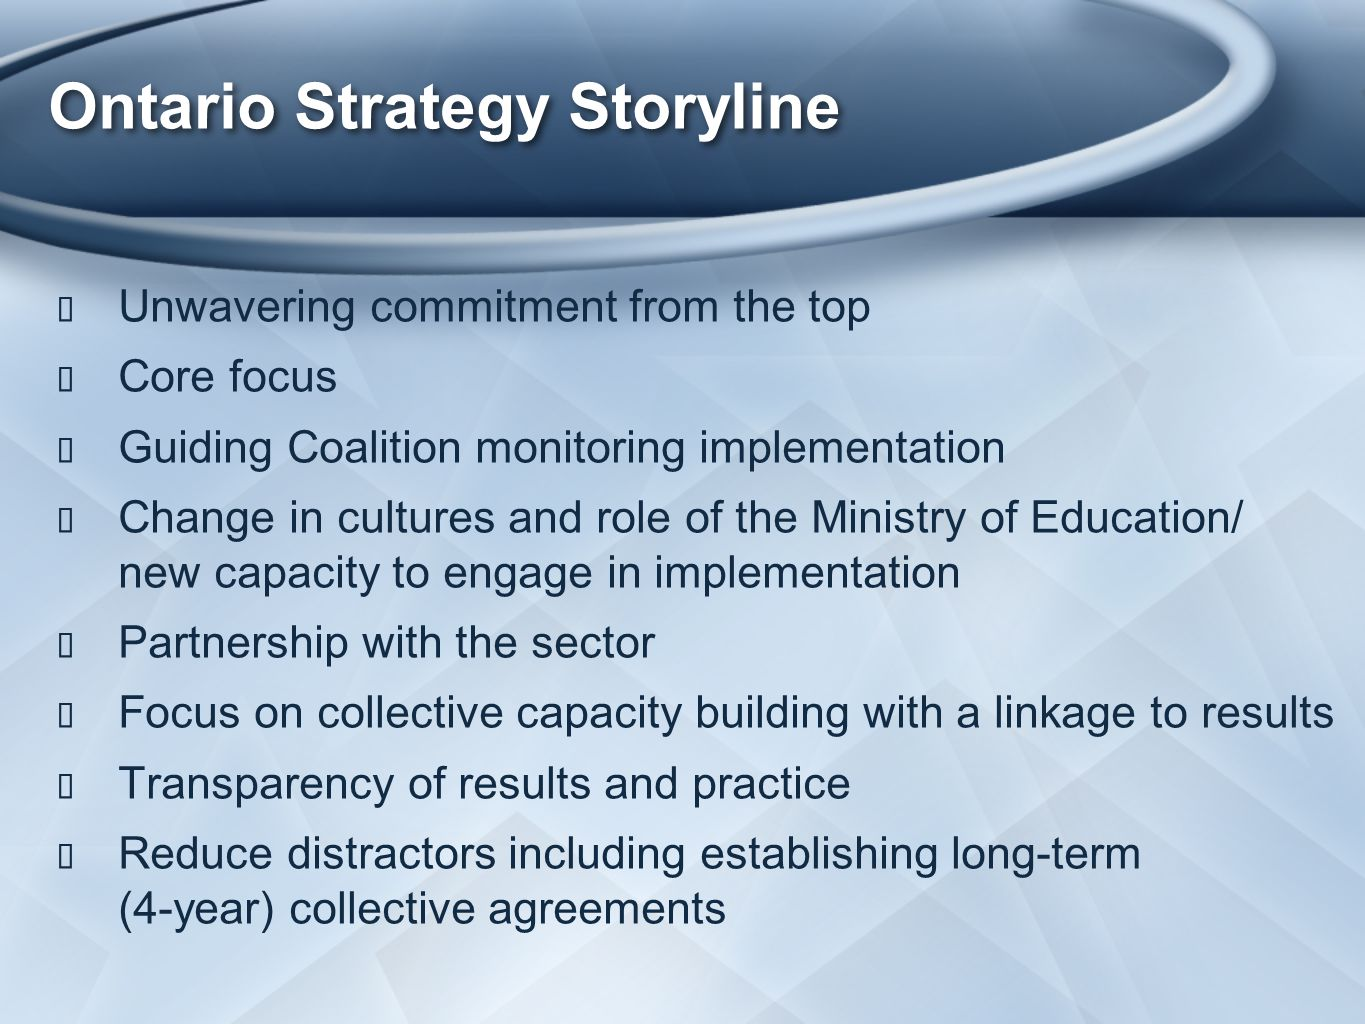 Ontario Strategy Storyline ★ Unwavering commitment from the top ★ Core focus ★ Guiding Coalition monitoring implementation ★ Change in cultures and role of the Ministry of Education/ new capacity to engage in implementation ★ Partnership with the sector ★ Focus on collective capacity building with a linkage to results ★ Transparency of results and practice ★ Reduce distractors including establishing long-term (4-year) collective agreements